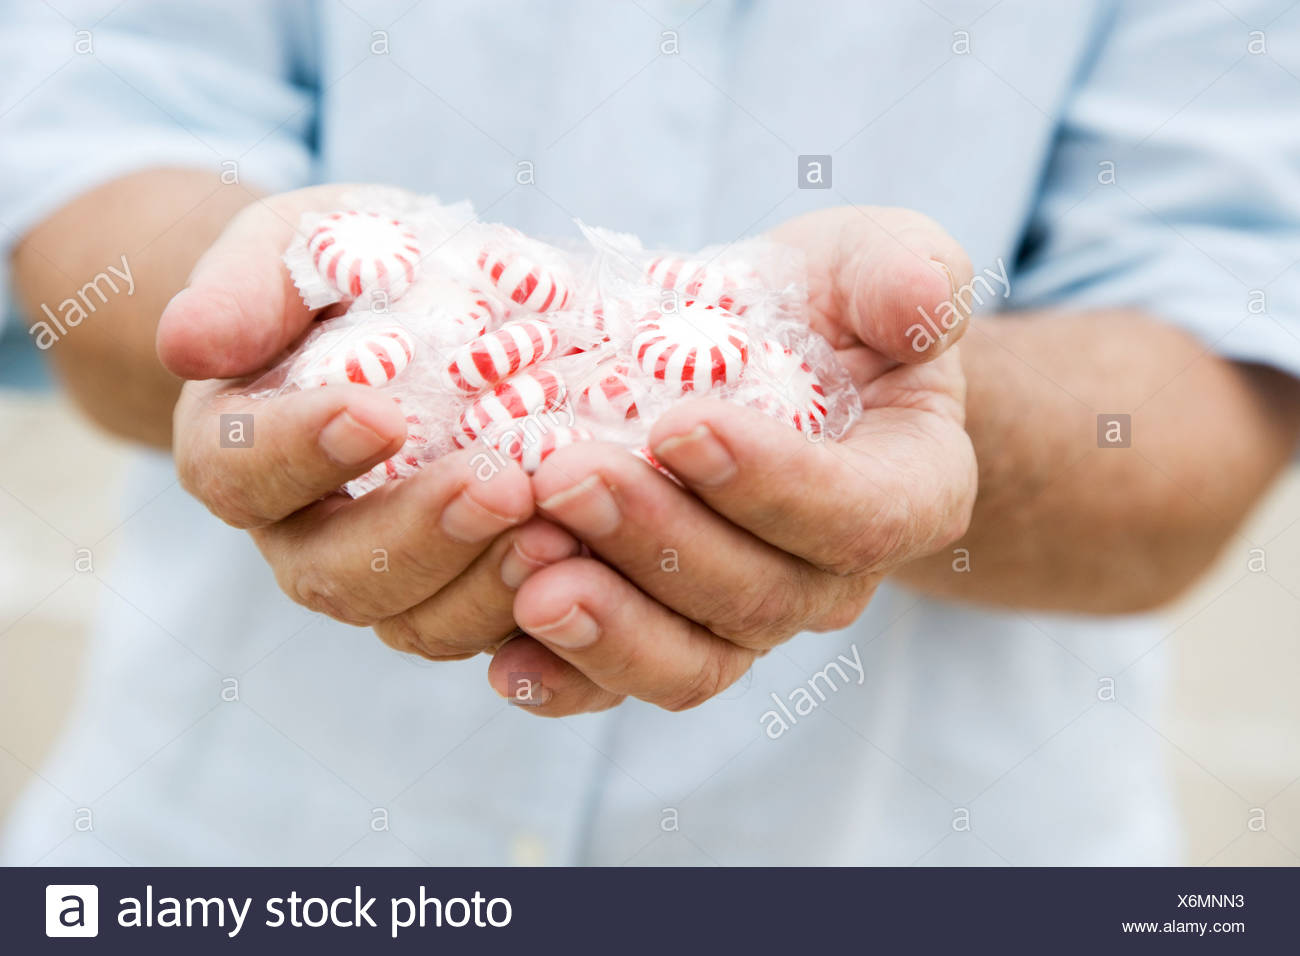 Senior man's hand holding sweets or candy - Stock Image